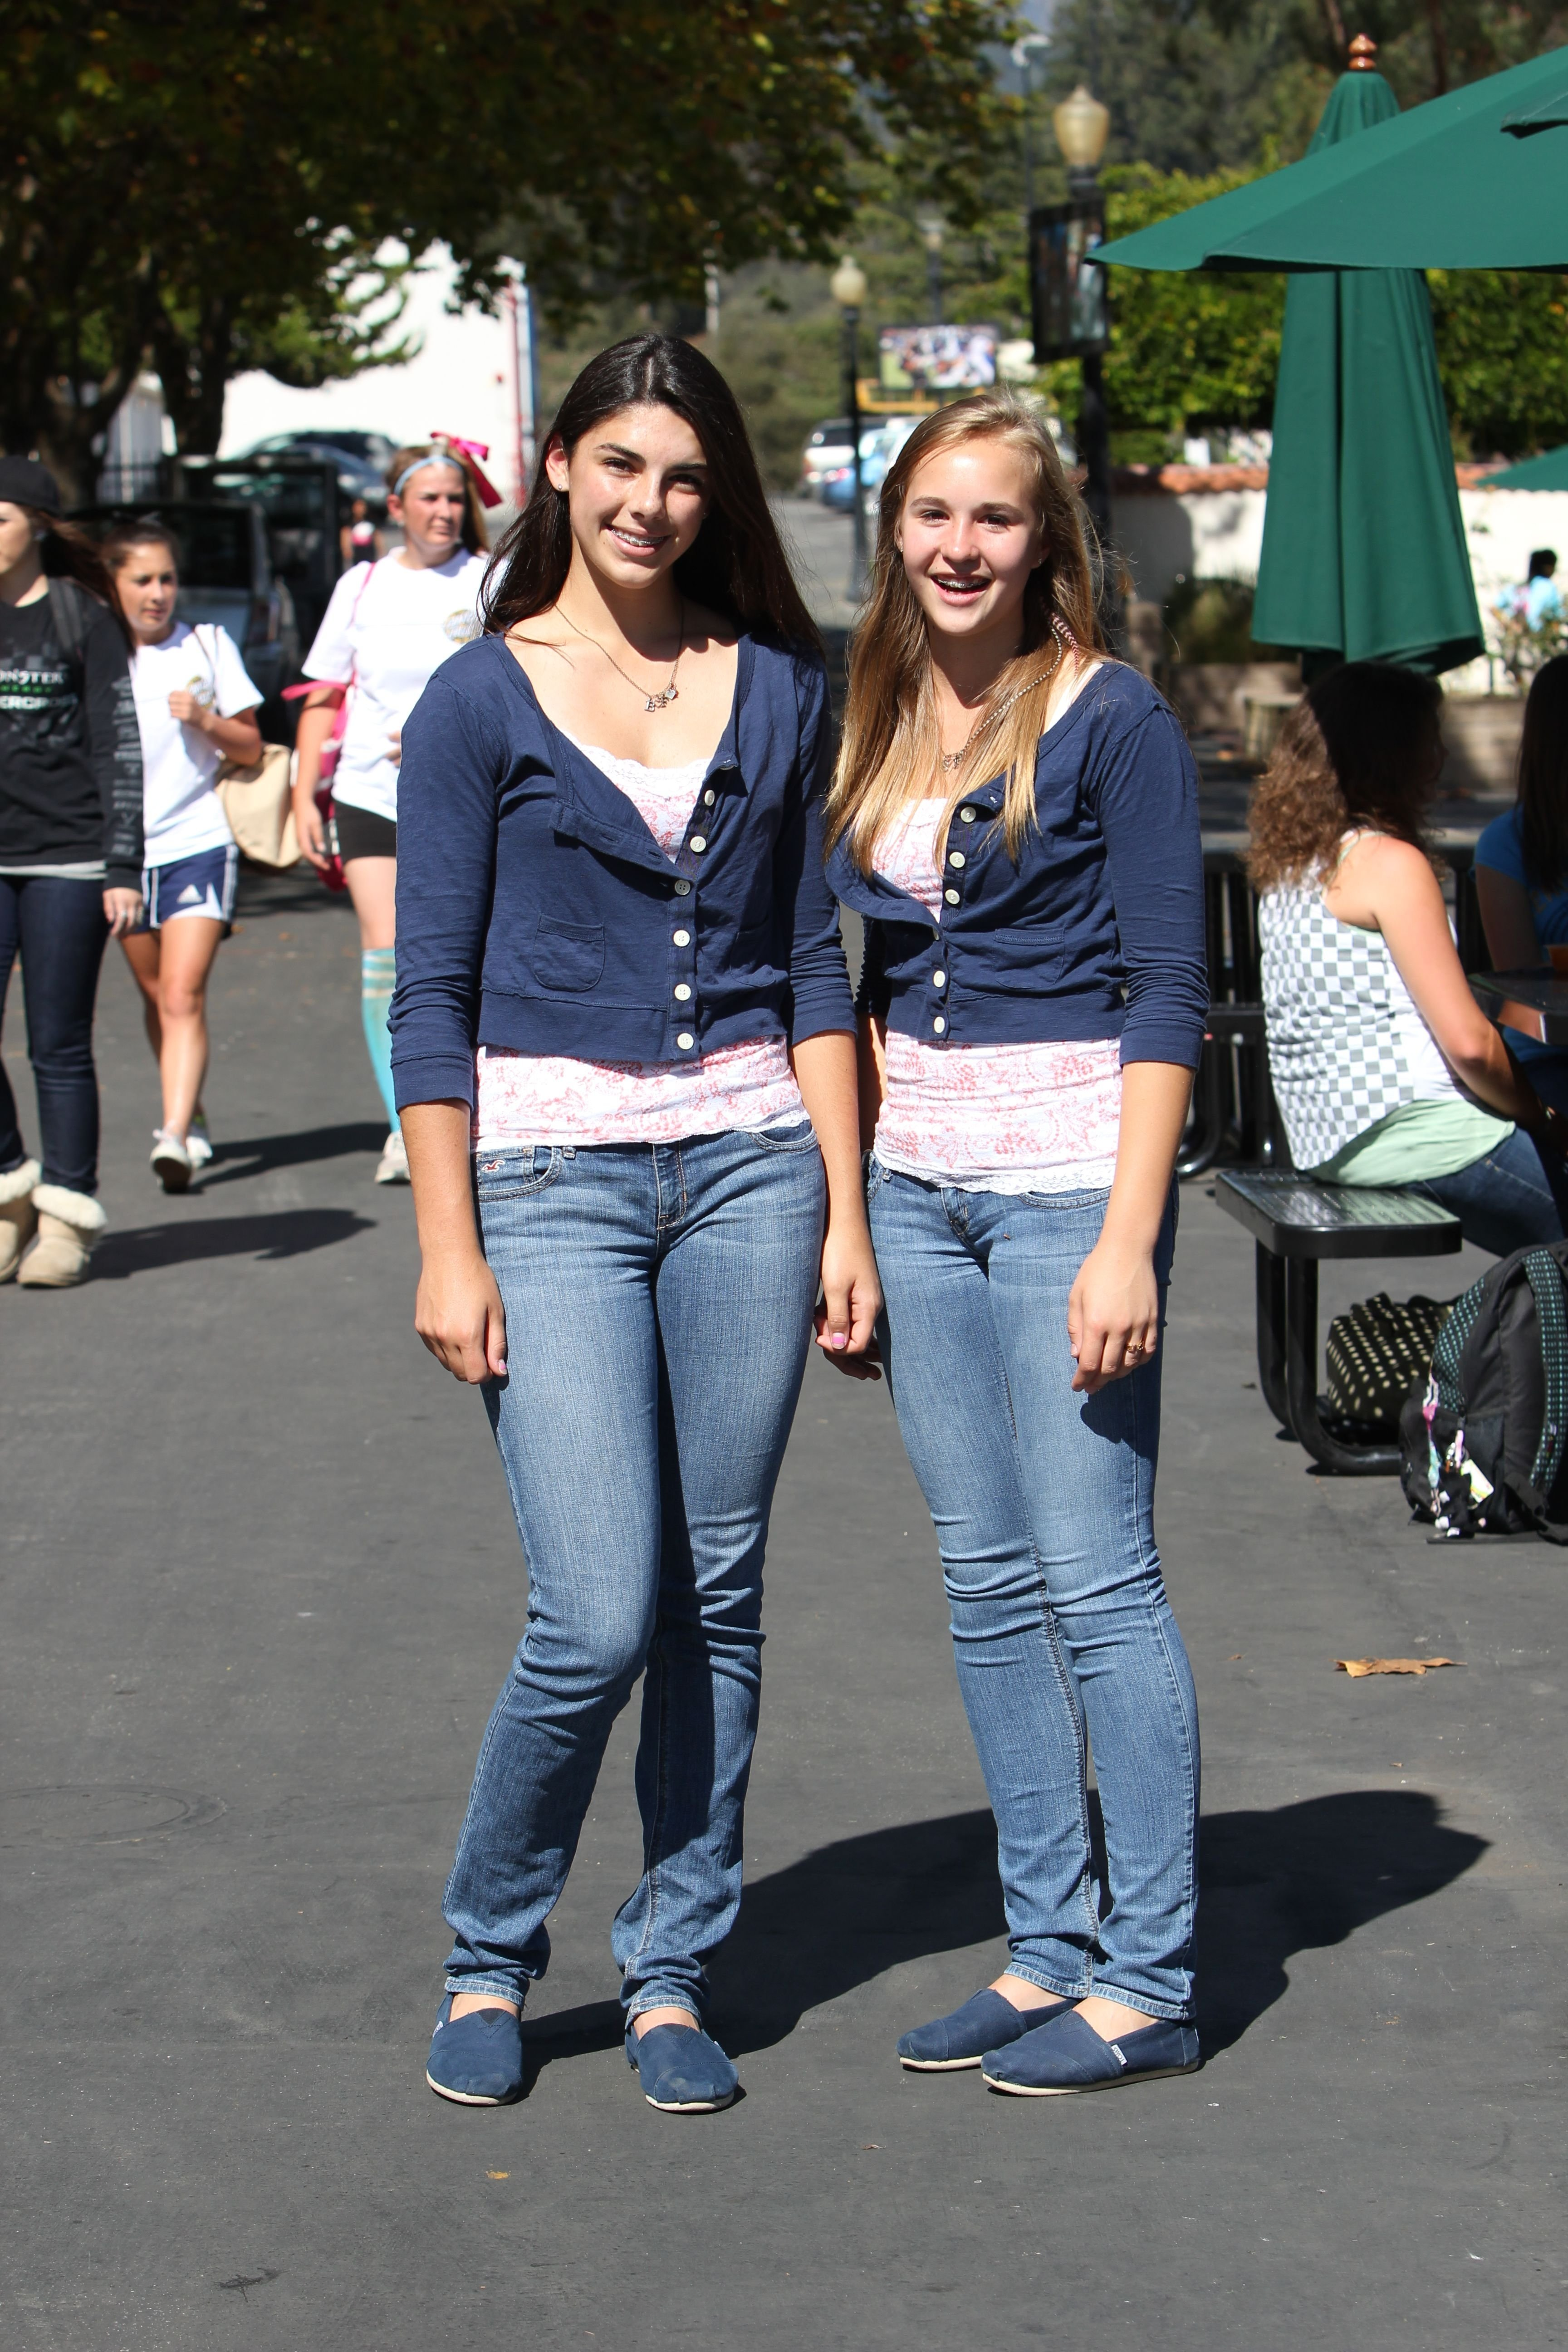 10 Spectacular Twin Day Dress Up Ideas mvcs twins day dress up partner dress up pinterest twins and 2020